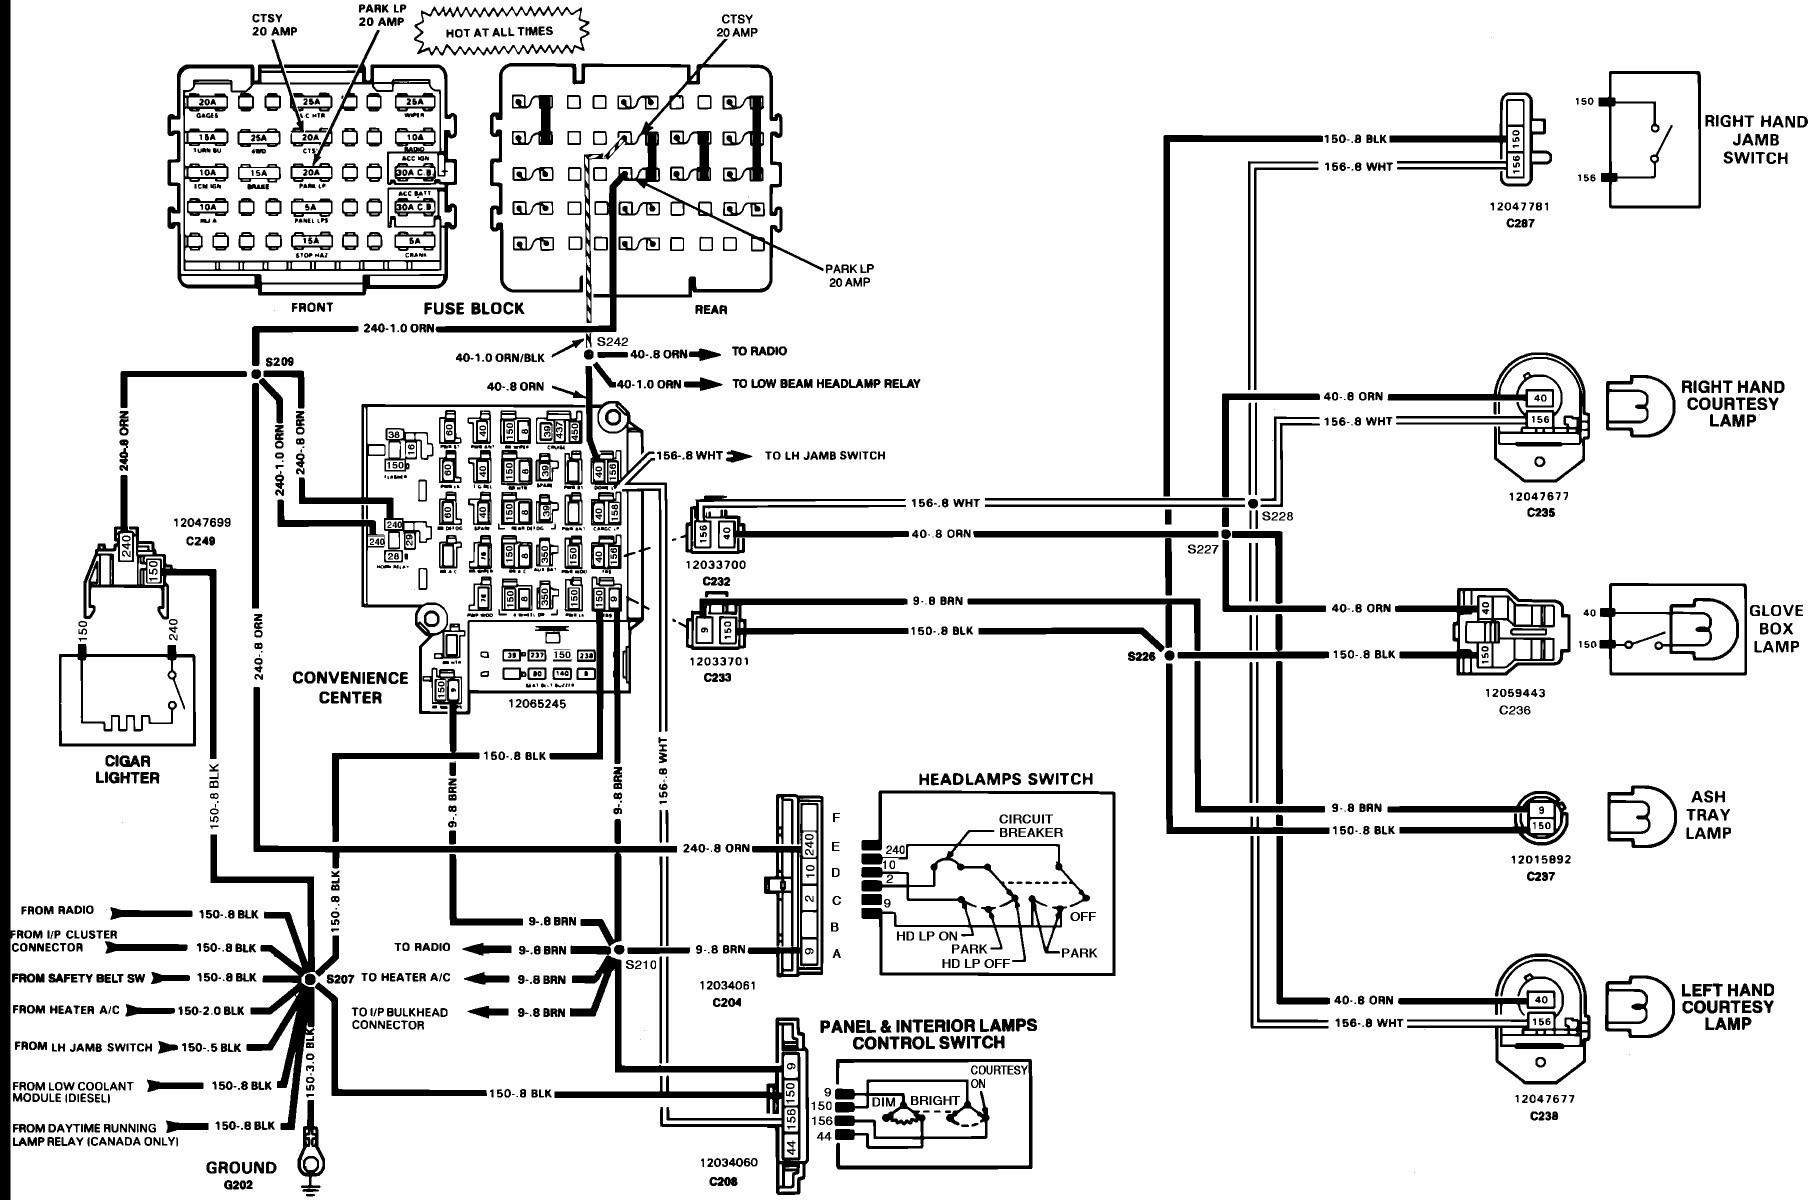 bmw m3 e46 fuse box diagram wiring library88 98 chevy radio wiring diagram \u2022 wiring diagram for free